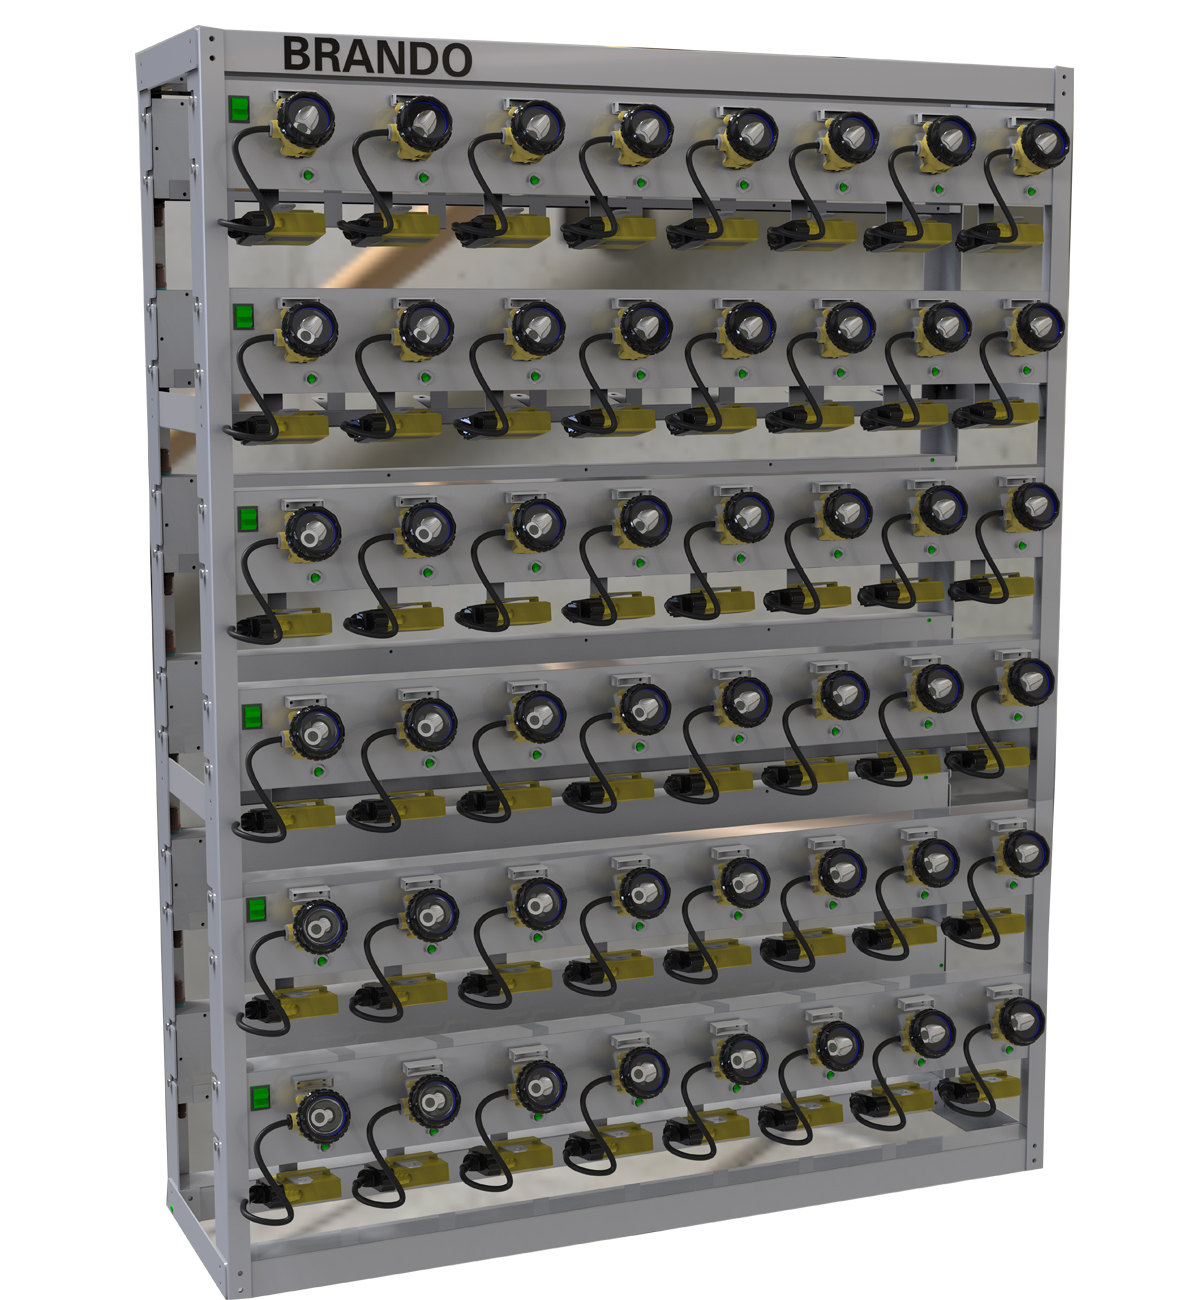 BRANDO 96units LED Cap Lamp Charger Racks with detachable modular